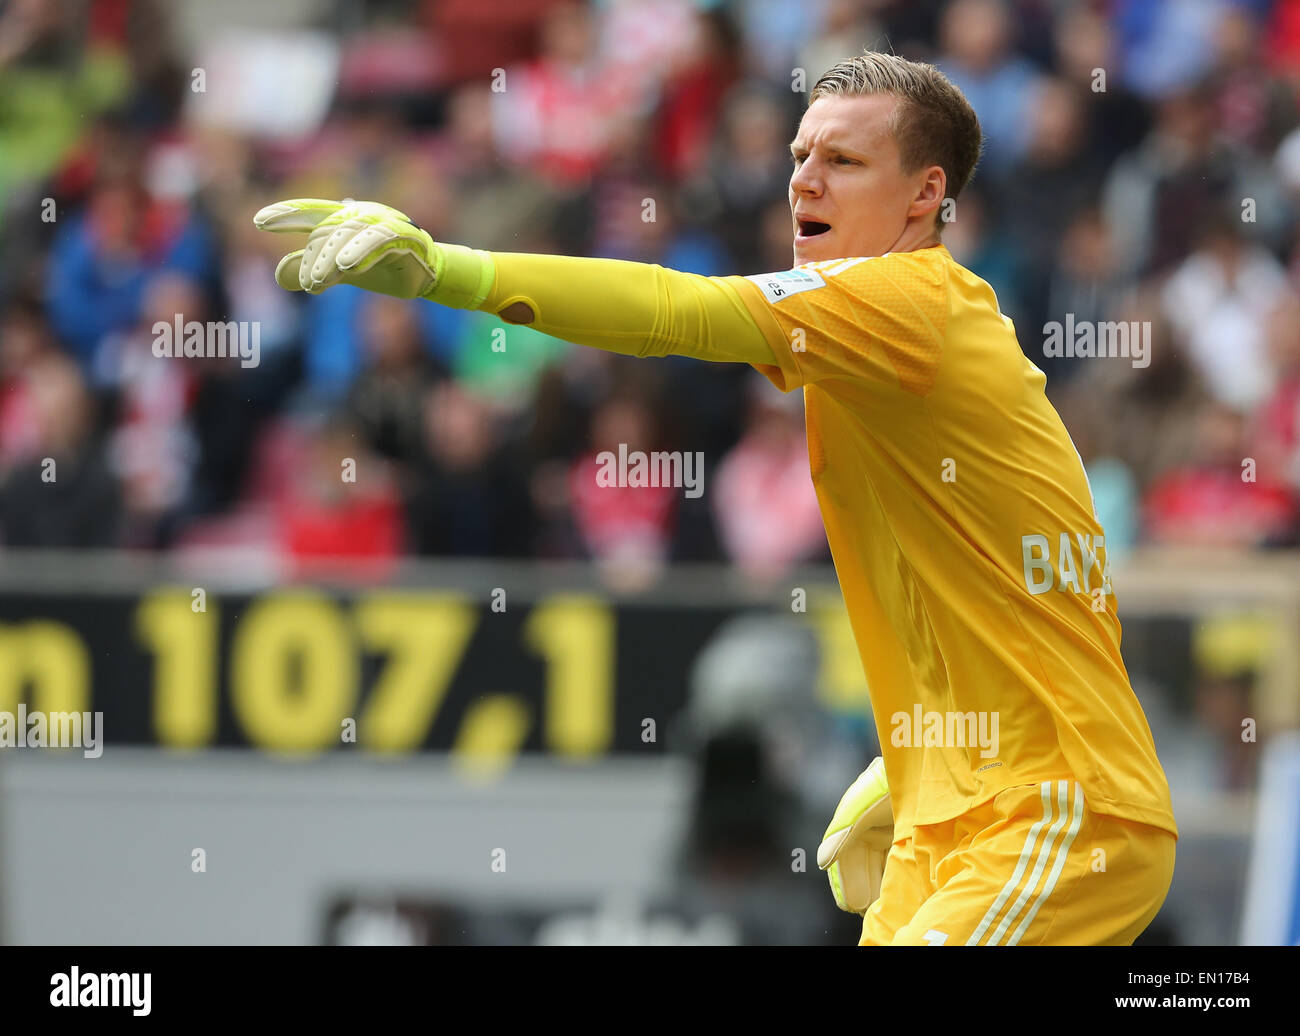 Cologne, Germany, 25Apr 2015. Bundesliga, 1. FC Koeln vs Bayer Leverkusen: Goalkeeper Bernd Leno (Leverkusen) gives - Stock Image